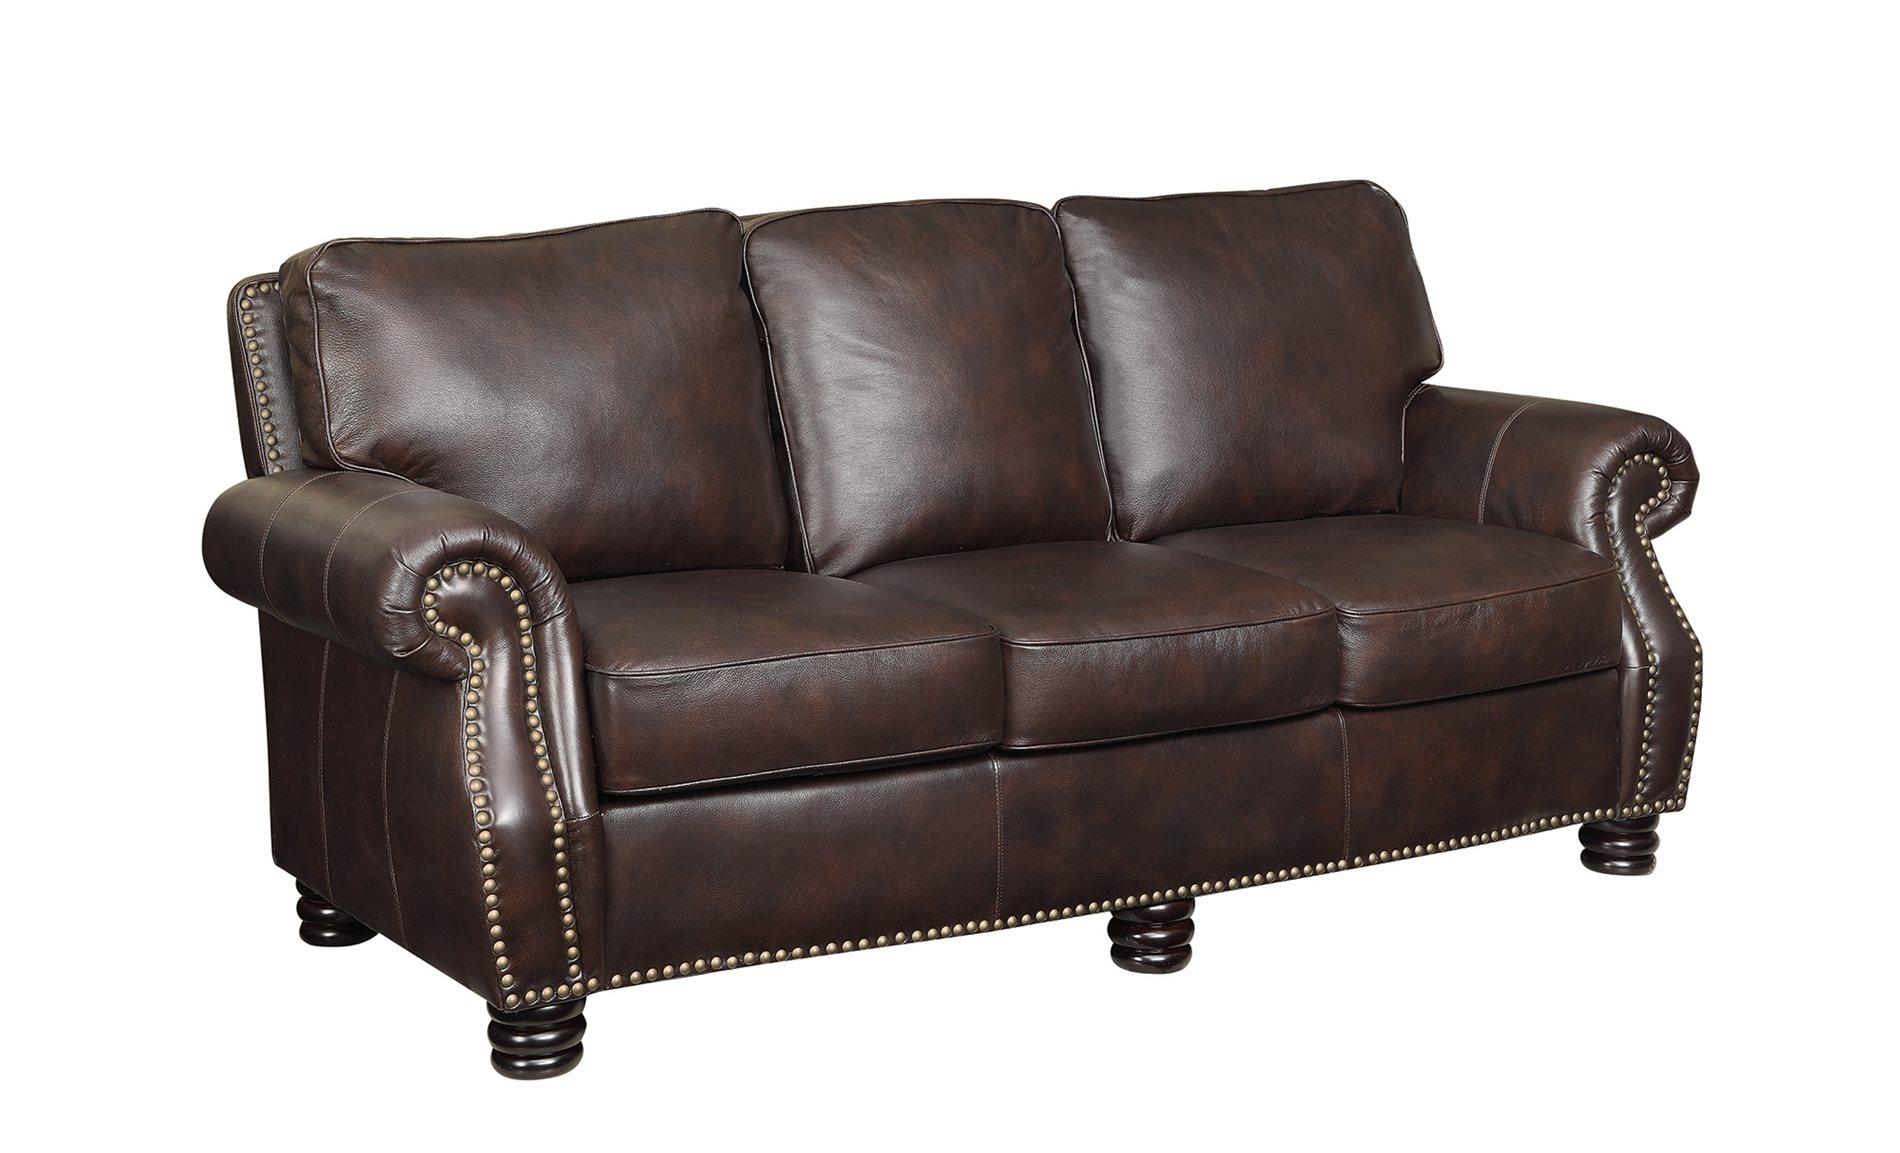 Coaster home 504961 crawford traditional leather sofa with for Sofa with studs